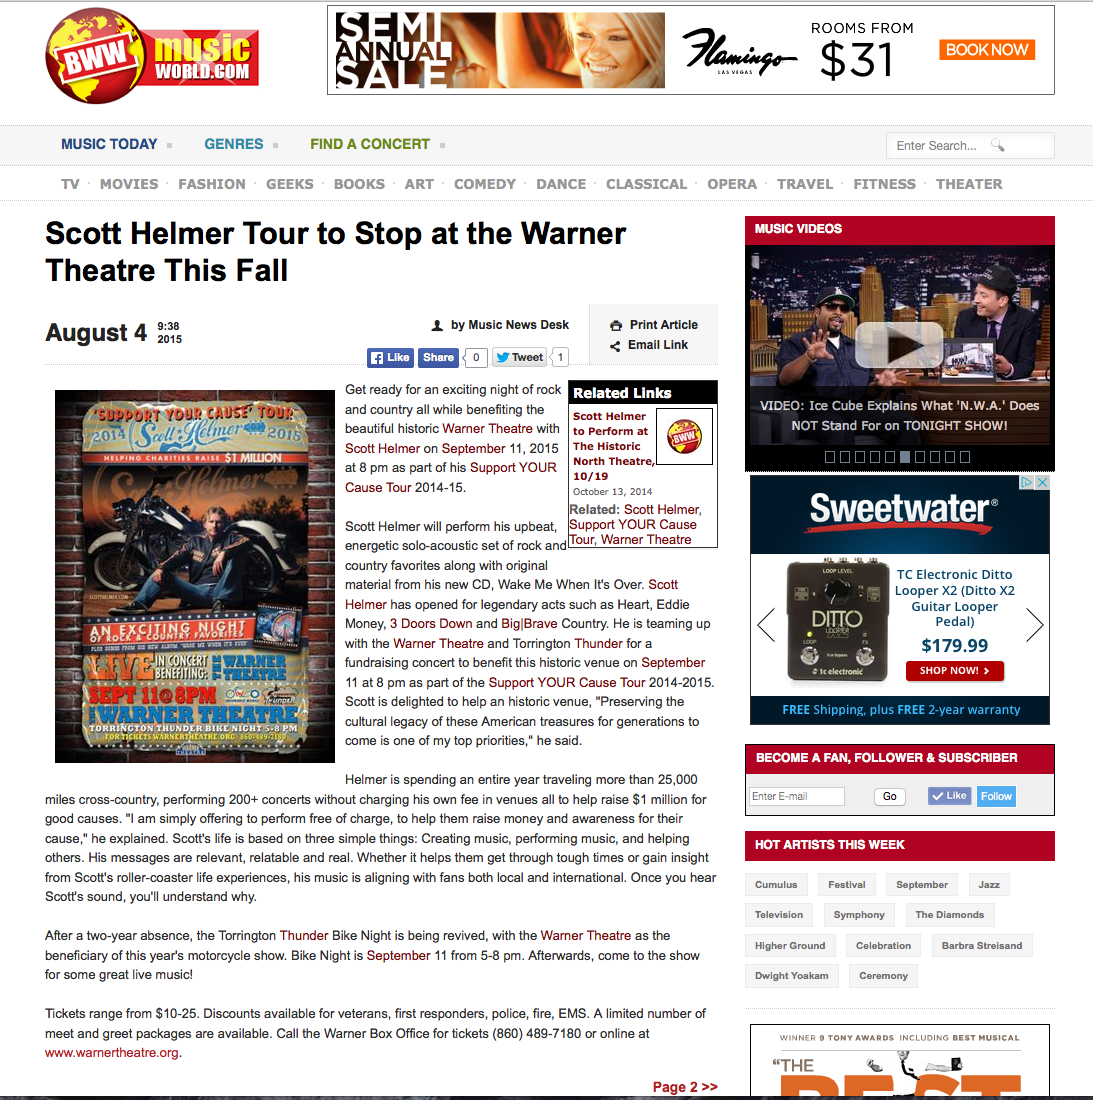 Broadway World -  Scott Helmer Tour to Stop at the Warner Theatre This Fall